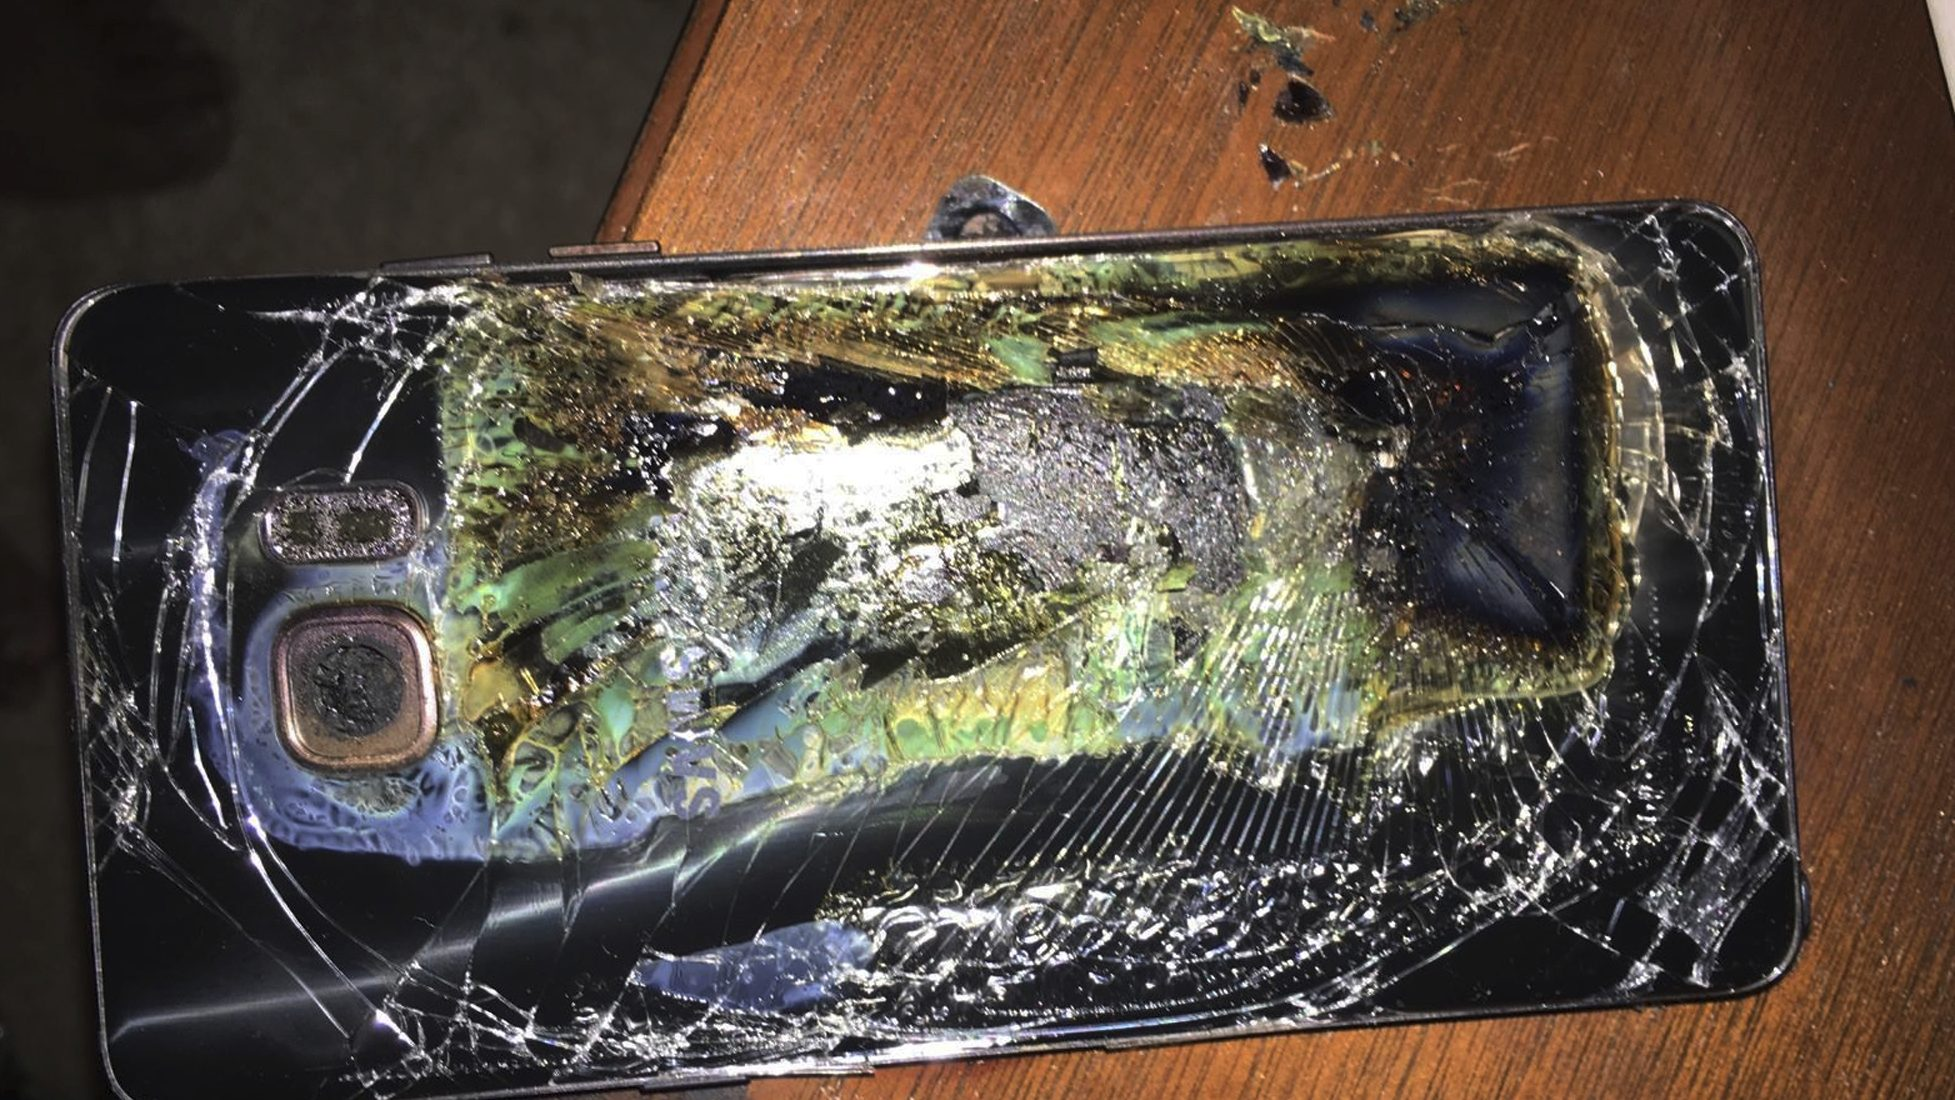 This Sunday, Oct. 9, 2016, photo shows a damaged Samsung Galaxy Note 7 on a table in Richmond, Va., after it caught fire earlier in the day. Samsung Electronics said Tuesday, Oct. 11, that it is discontinuing production of Galaxy Note 7 smartphones permanently, a day after stopping global sales of the ill-fated devices. (Shawn L. Minter via AP)